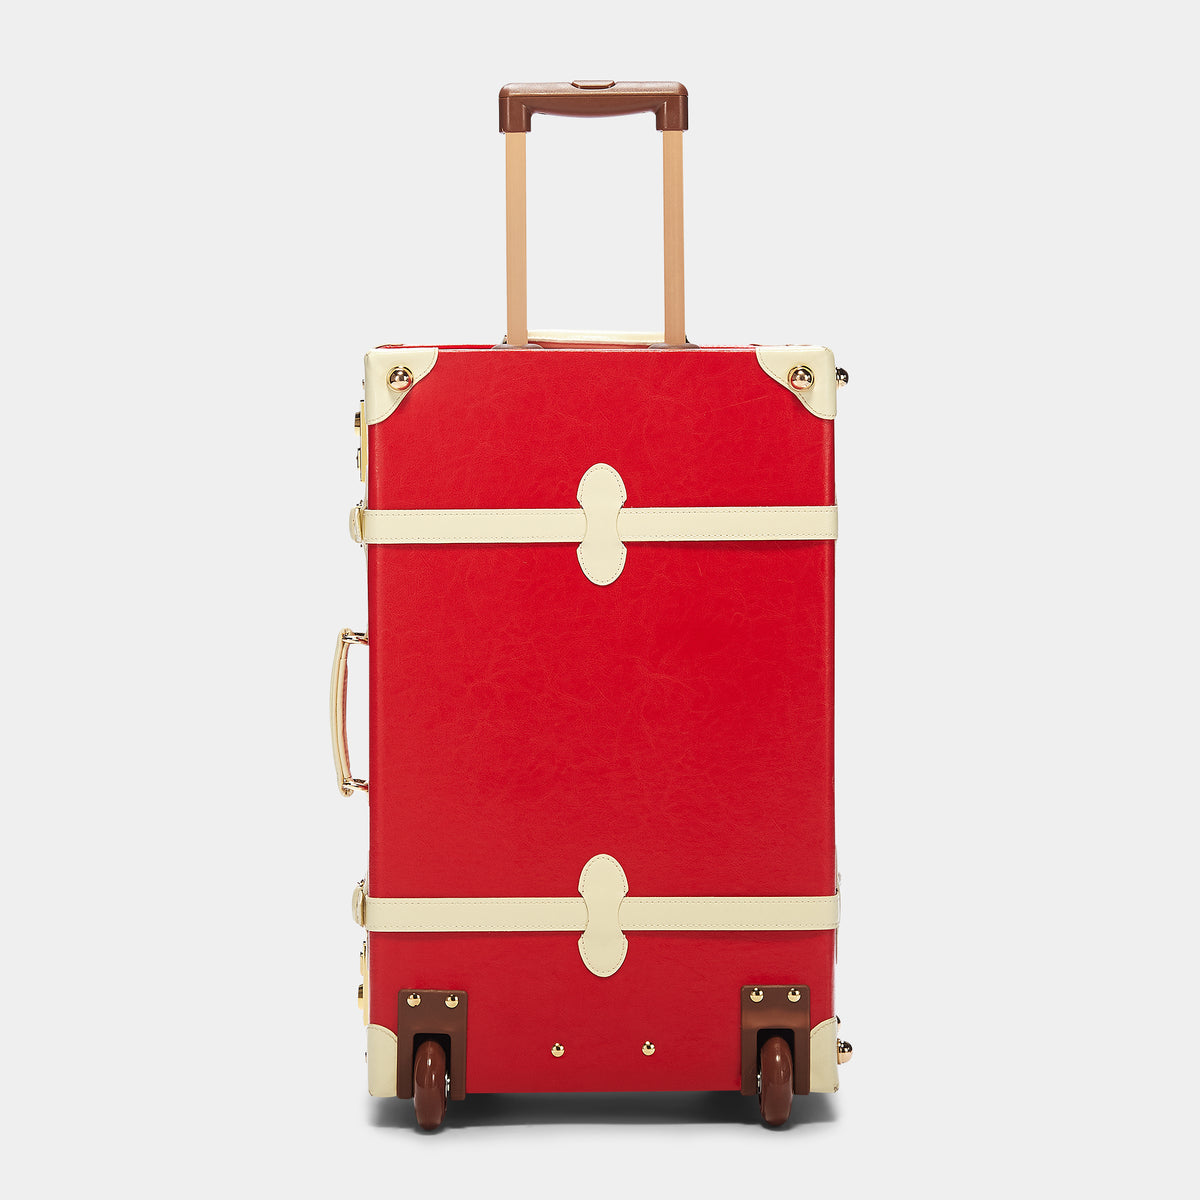 The Entrepreneur Stowaway in Red Lip - Vintage-Inspired Vegan Luggage - Exterior Back with Extendable Handle